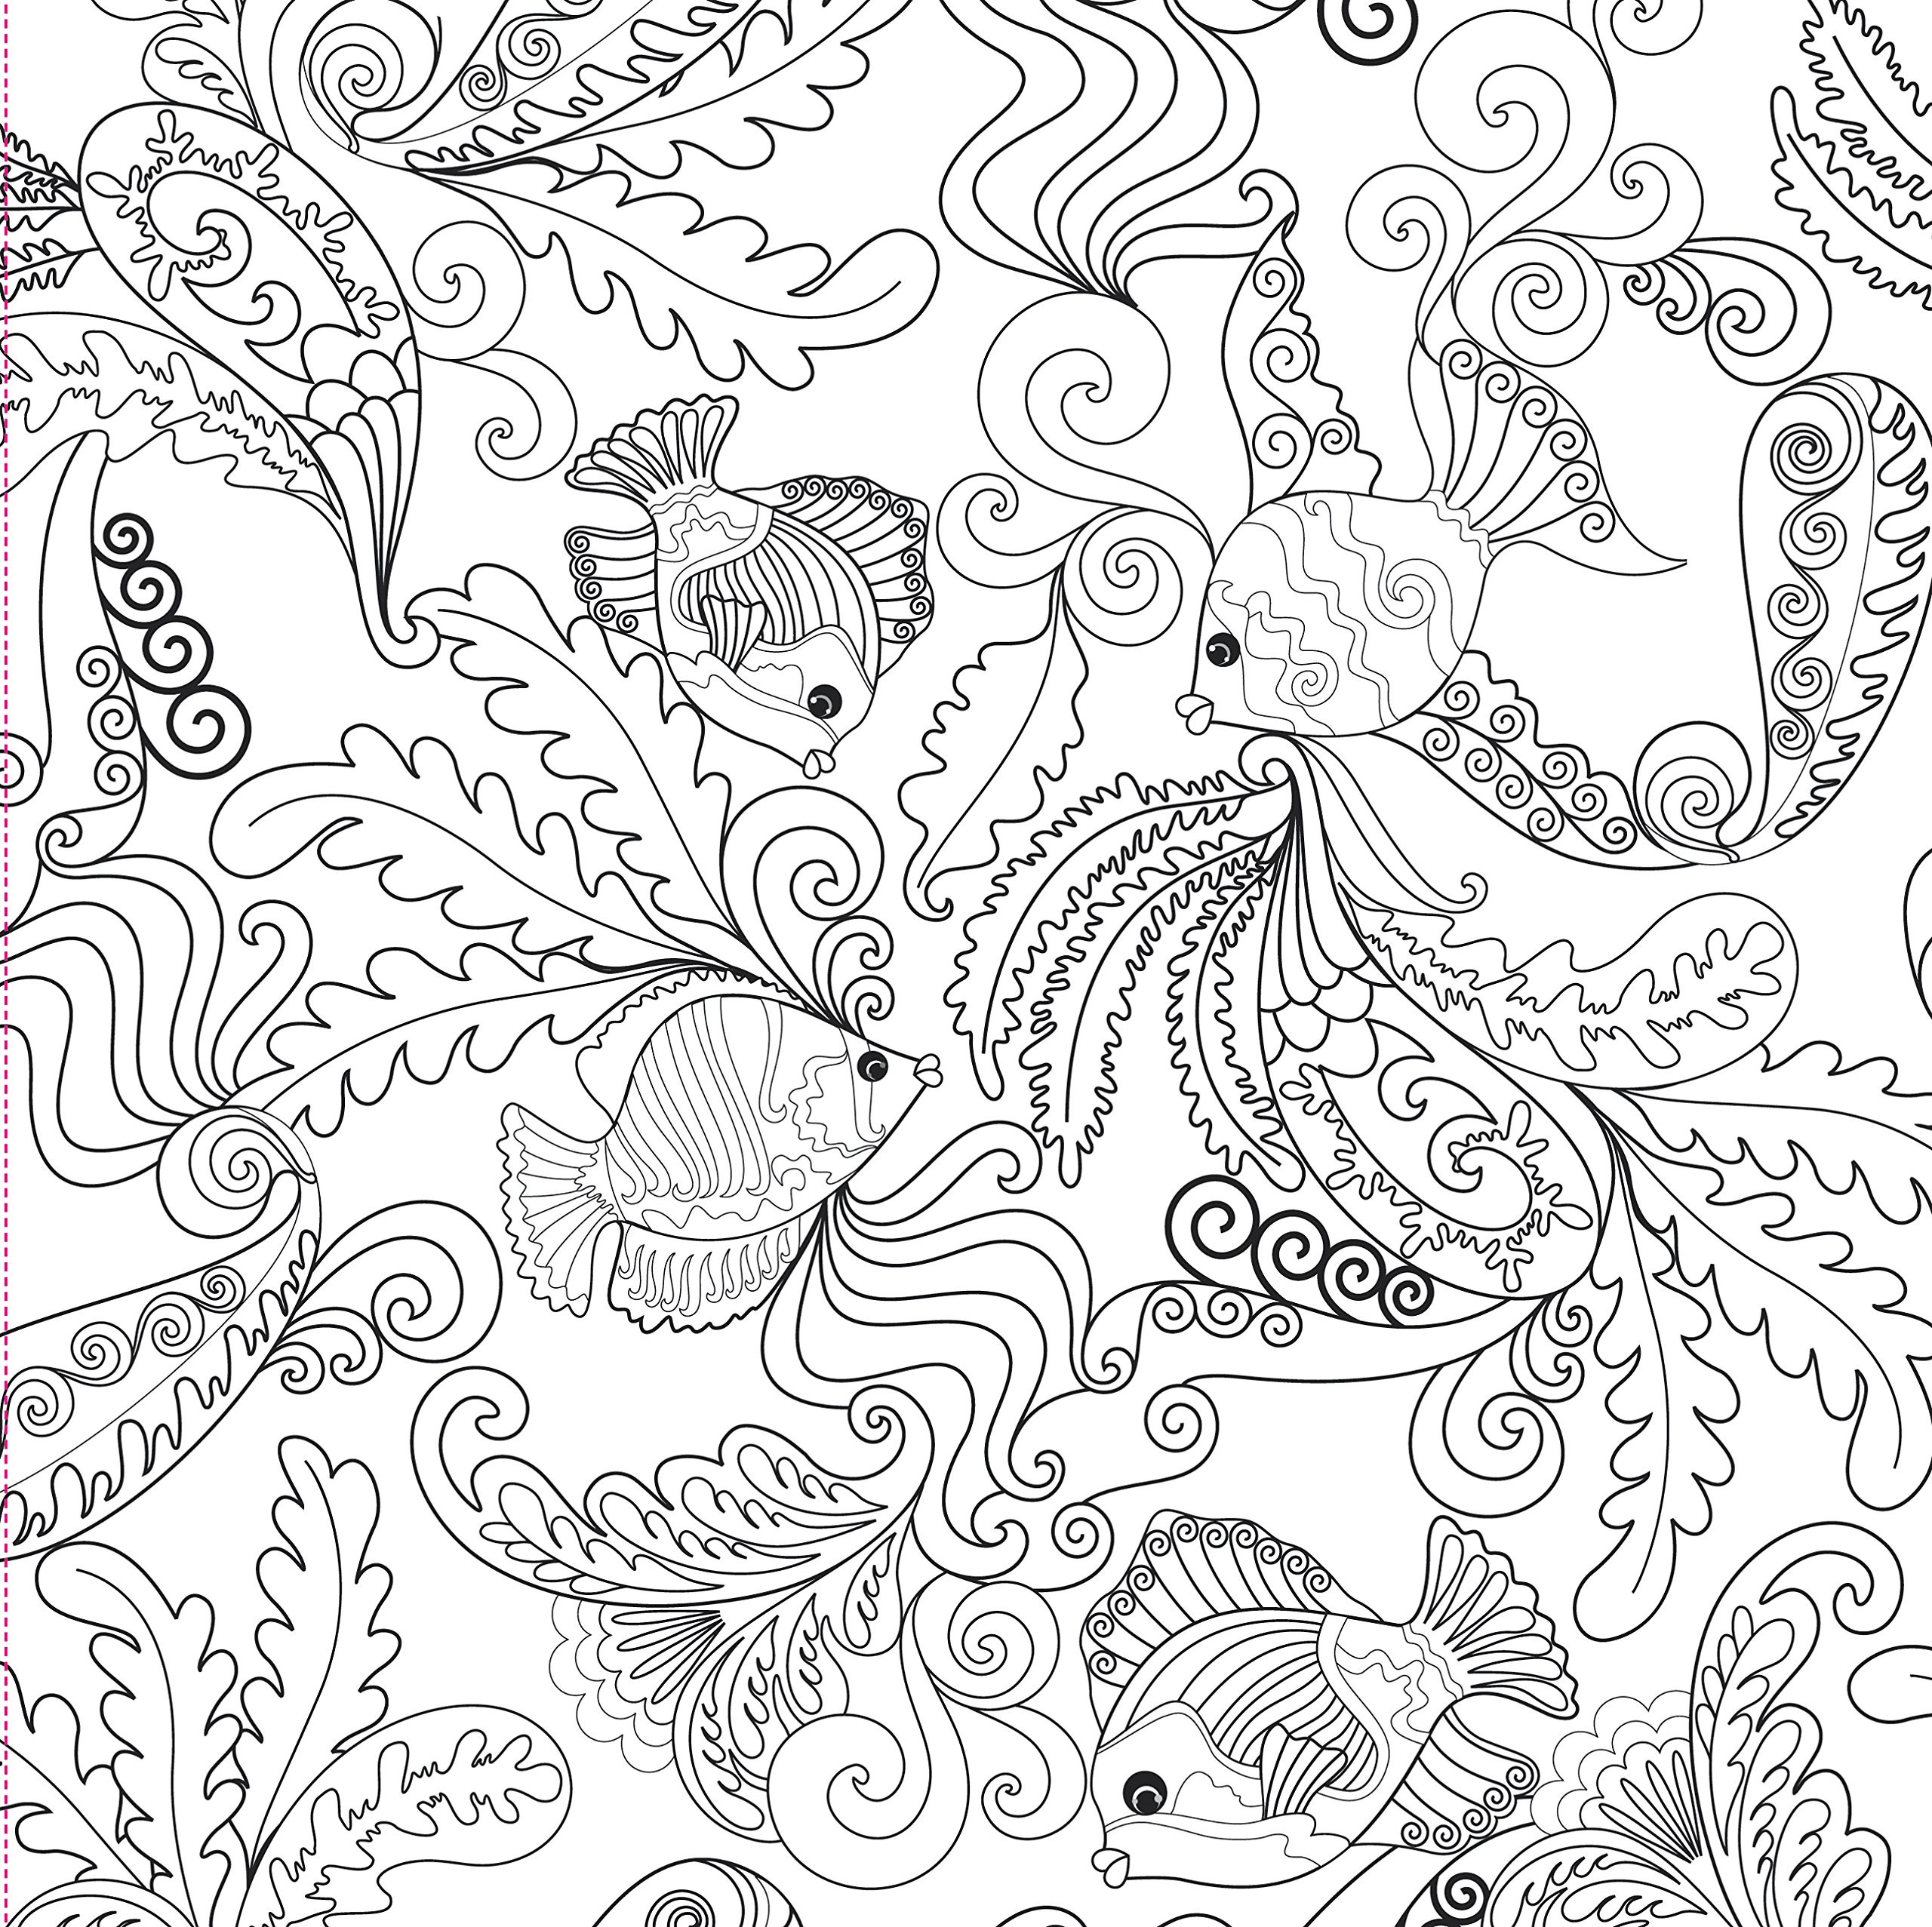 Free Printable Coloring Sheets Stress Relief  Stress Relief Drawing at GetDrawings